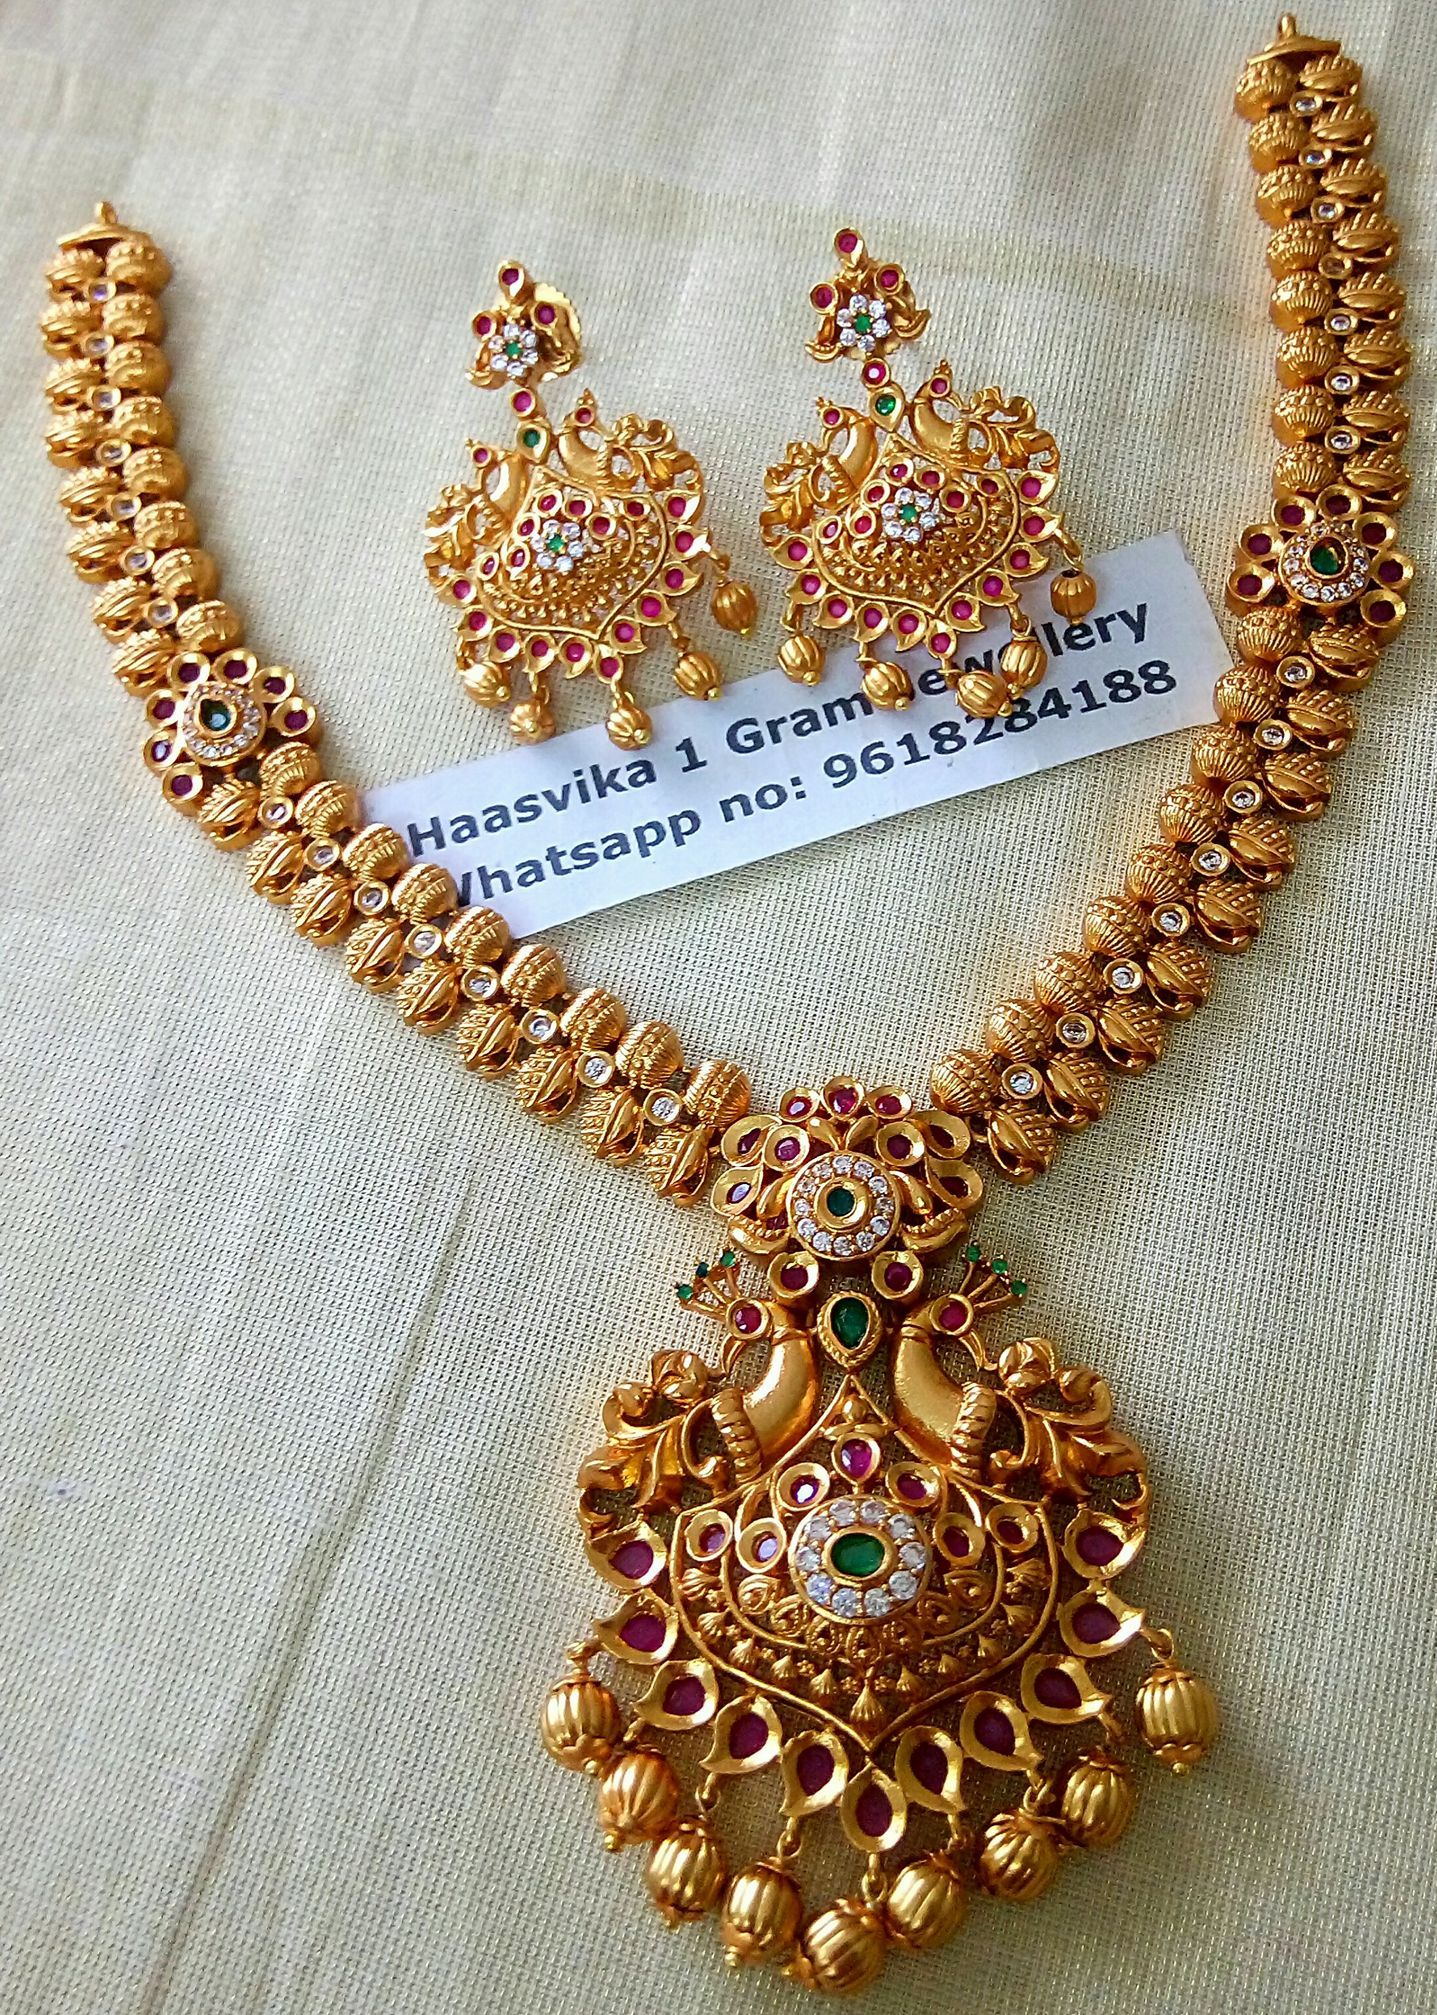 30056edcd68 1 gram gold jewellery wholesale. Contact   Whats app on 9618284188 ...